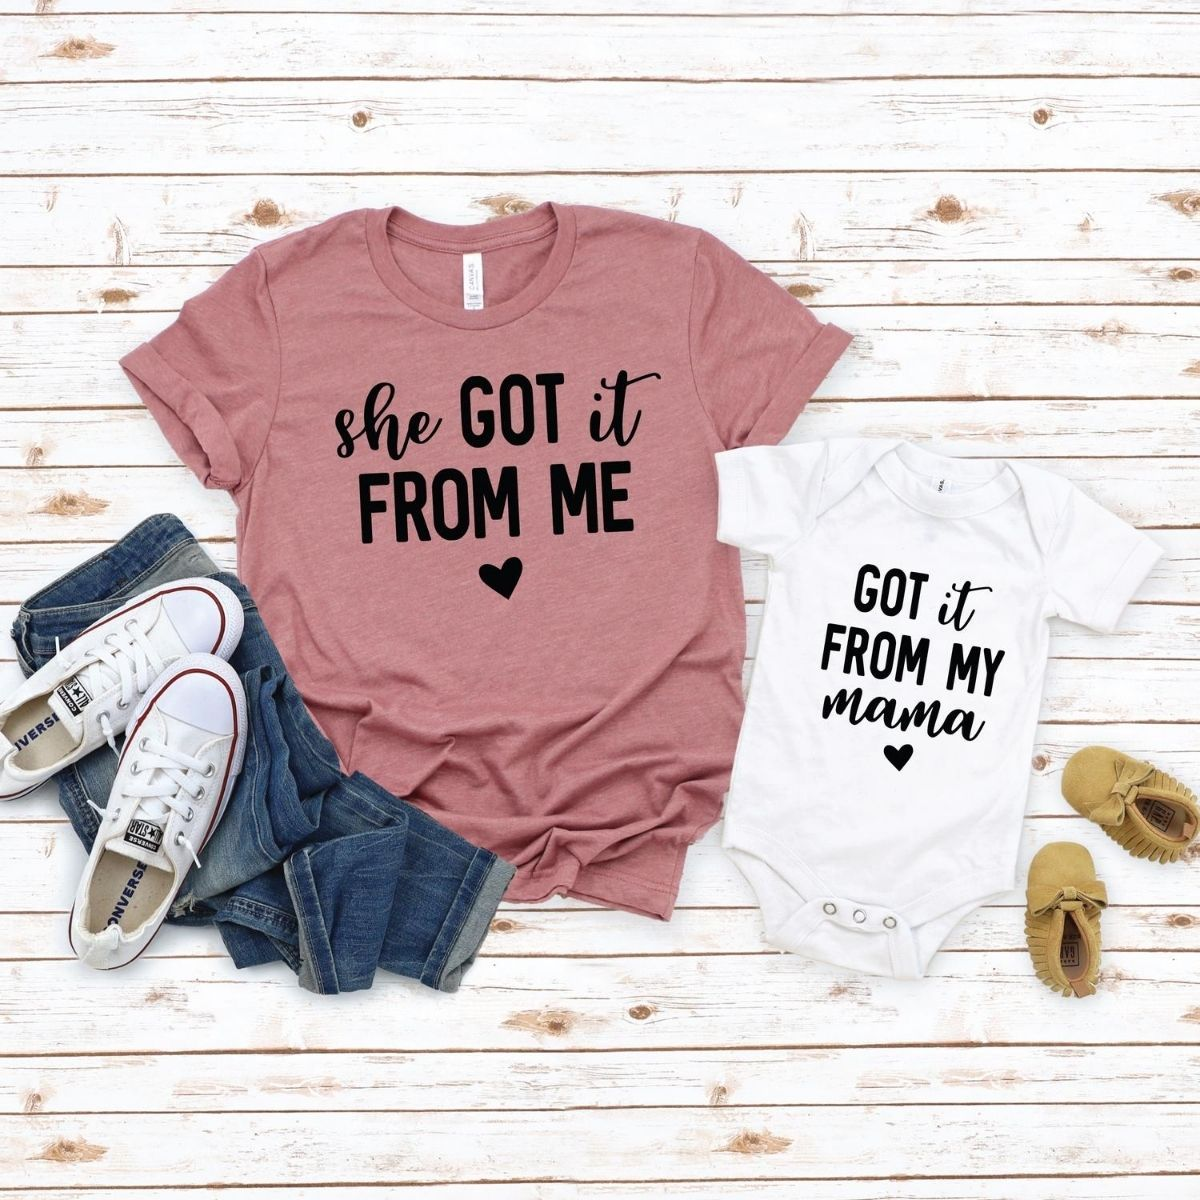 Matching Got it from Mama Shirt Onesie for Mom son daughter - New Born Onesie / White